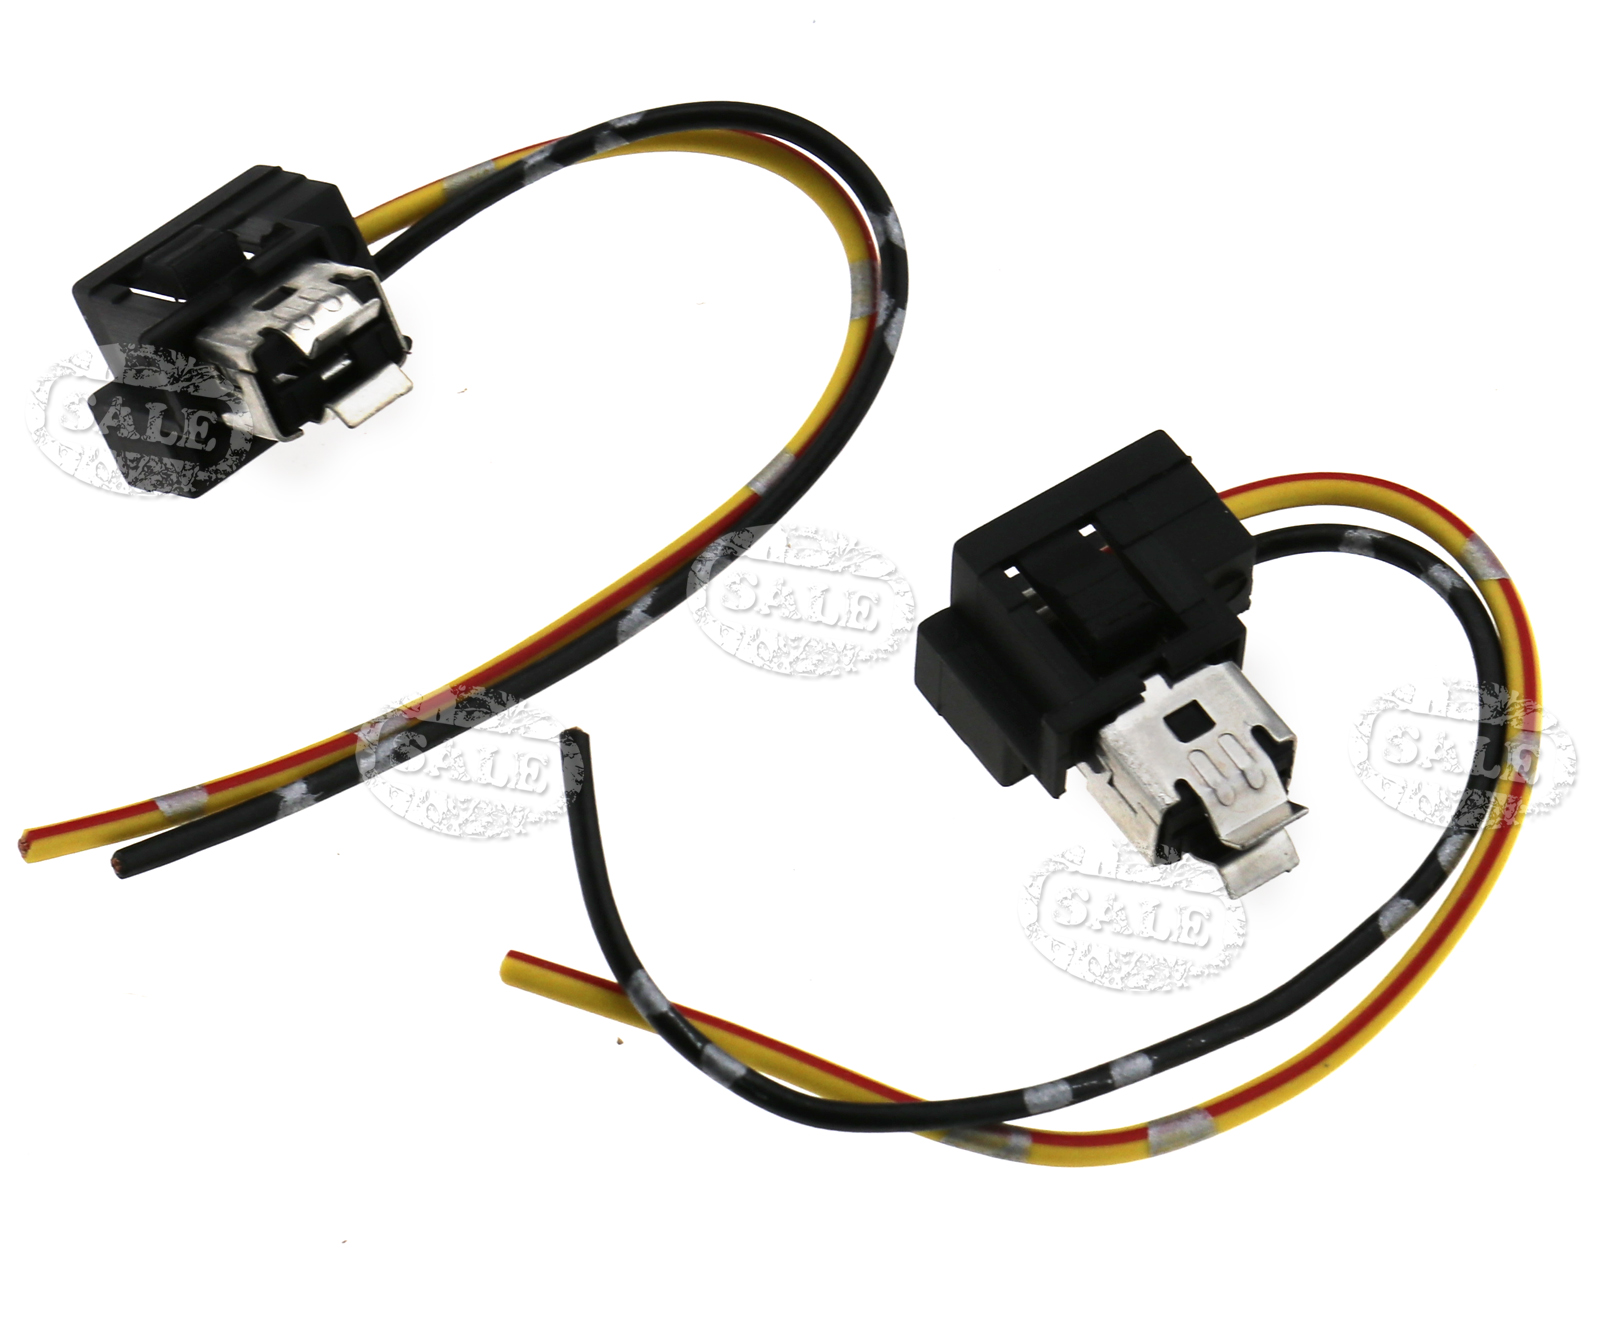 hight resolution of h1 headlight fog lamp bulb replacement socket holder wiring connector plug